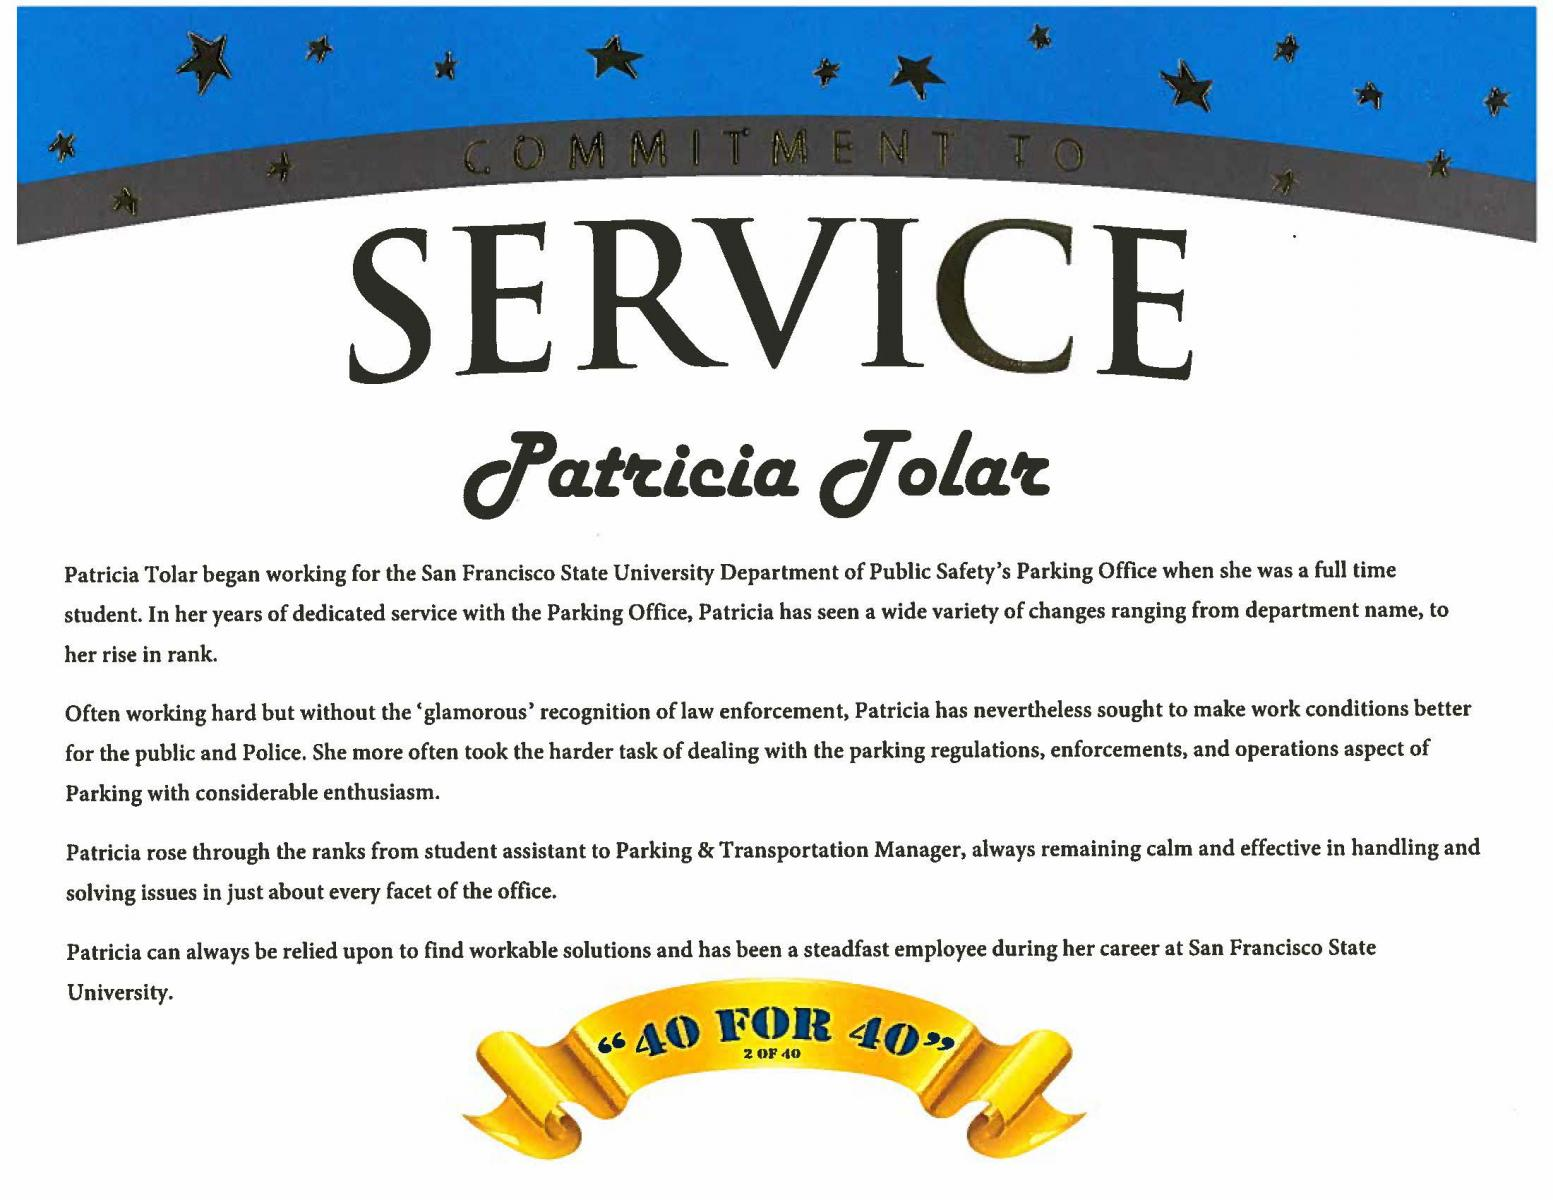 Service recognition award for Tolar